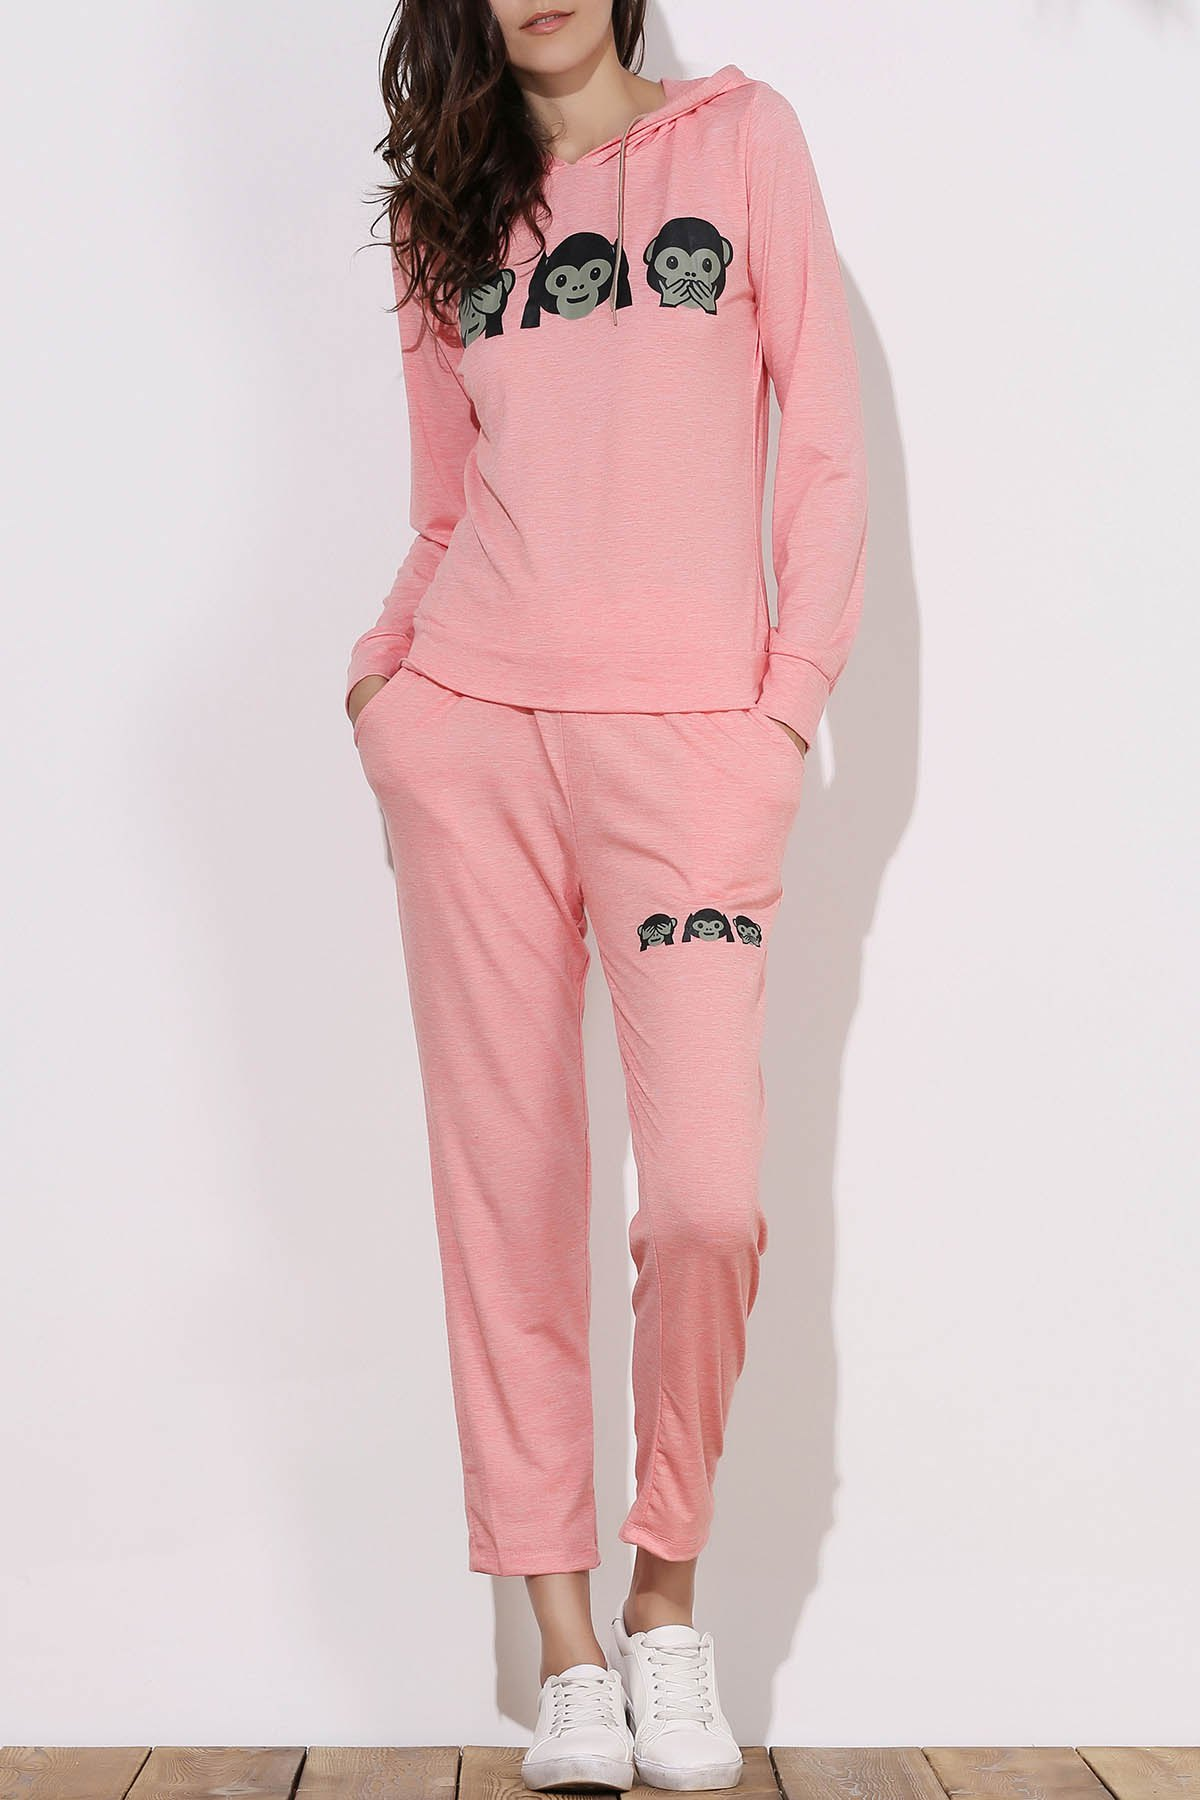 Cute Hooded Emoji Printed Pullover Hoodie and Elastic Waist Pants Twinset For WomenWOMEN<br><br>Size: S; Color: PINK; Material: Polyester; Shirt Length: Regular; Sleeve Length: Full; Pattern Style: Print; Weight: 0.4000kg; Package Contents: 1 x Hoodie  1 x Pants;